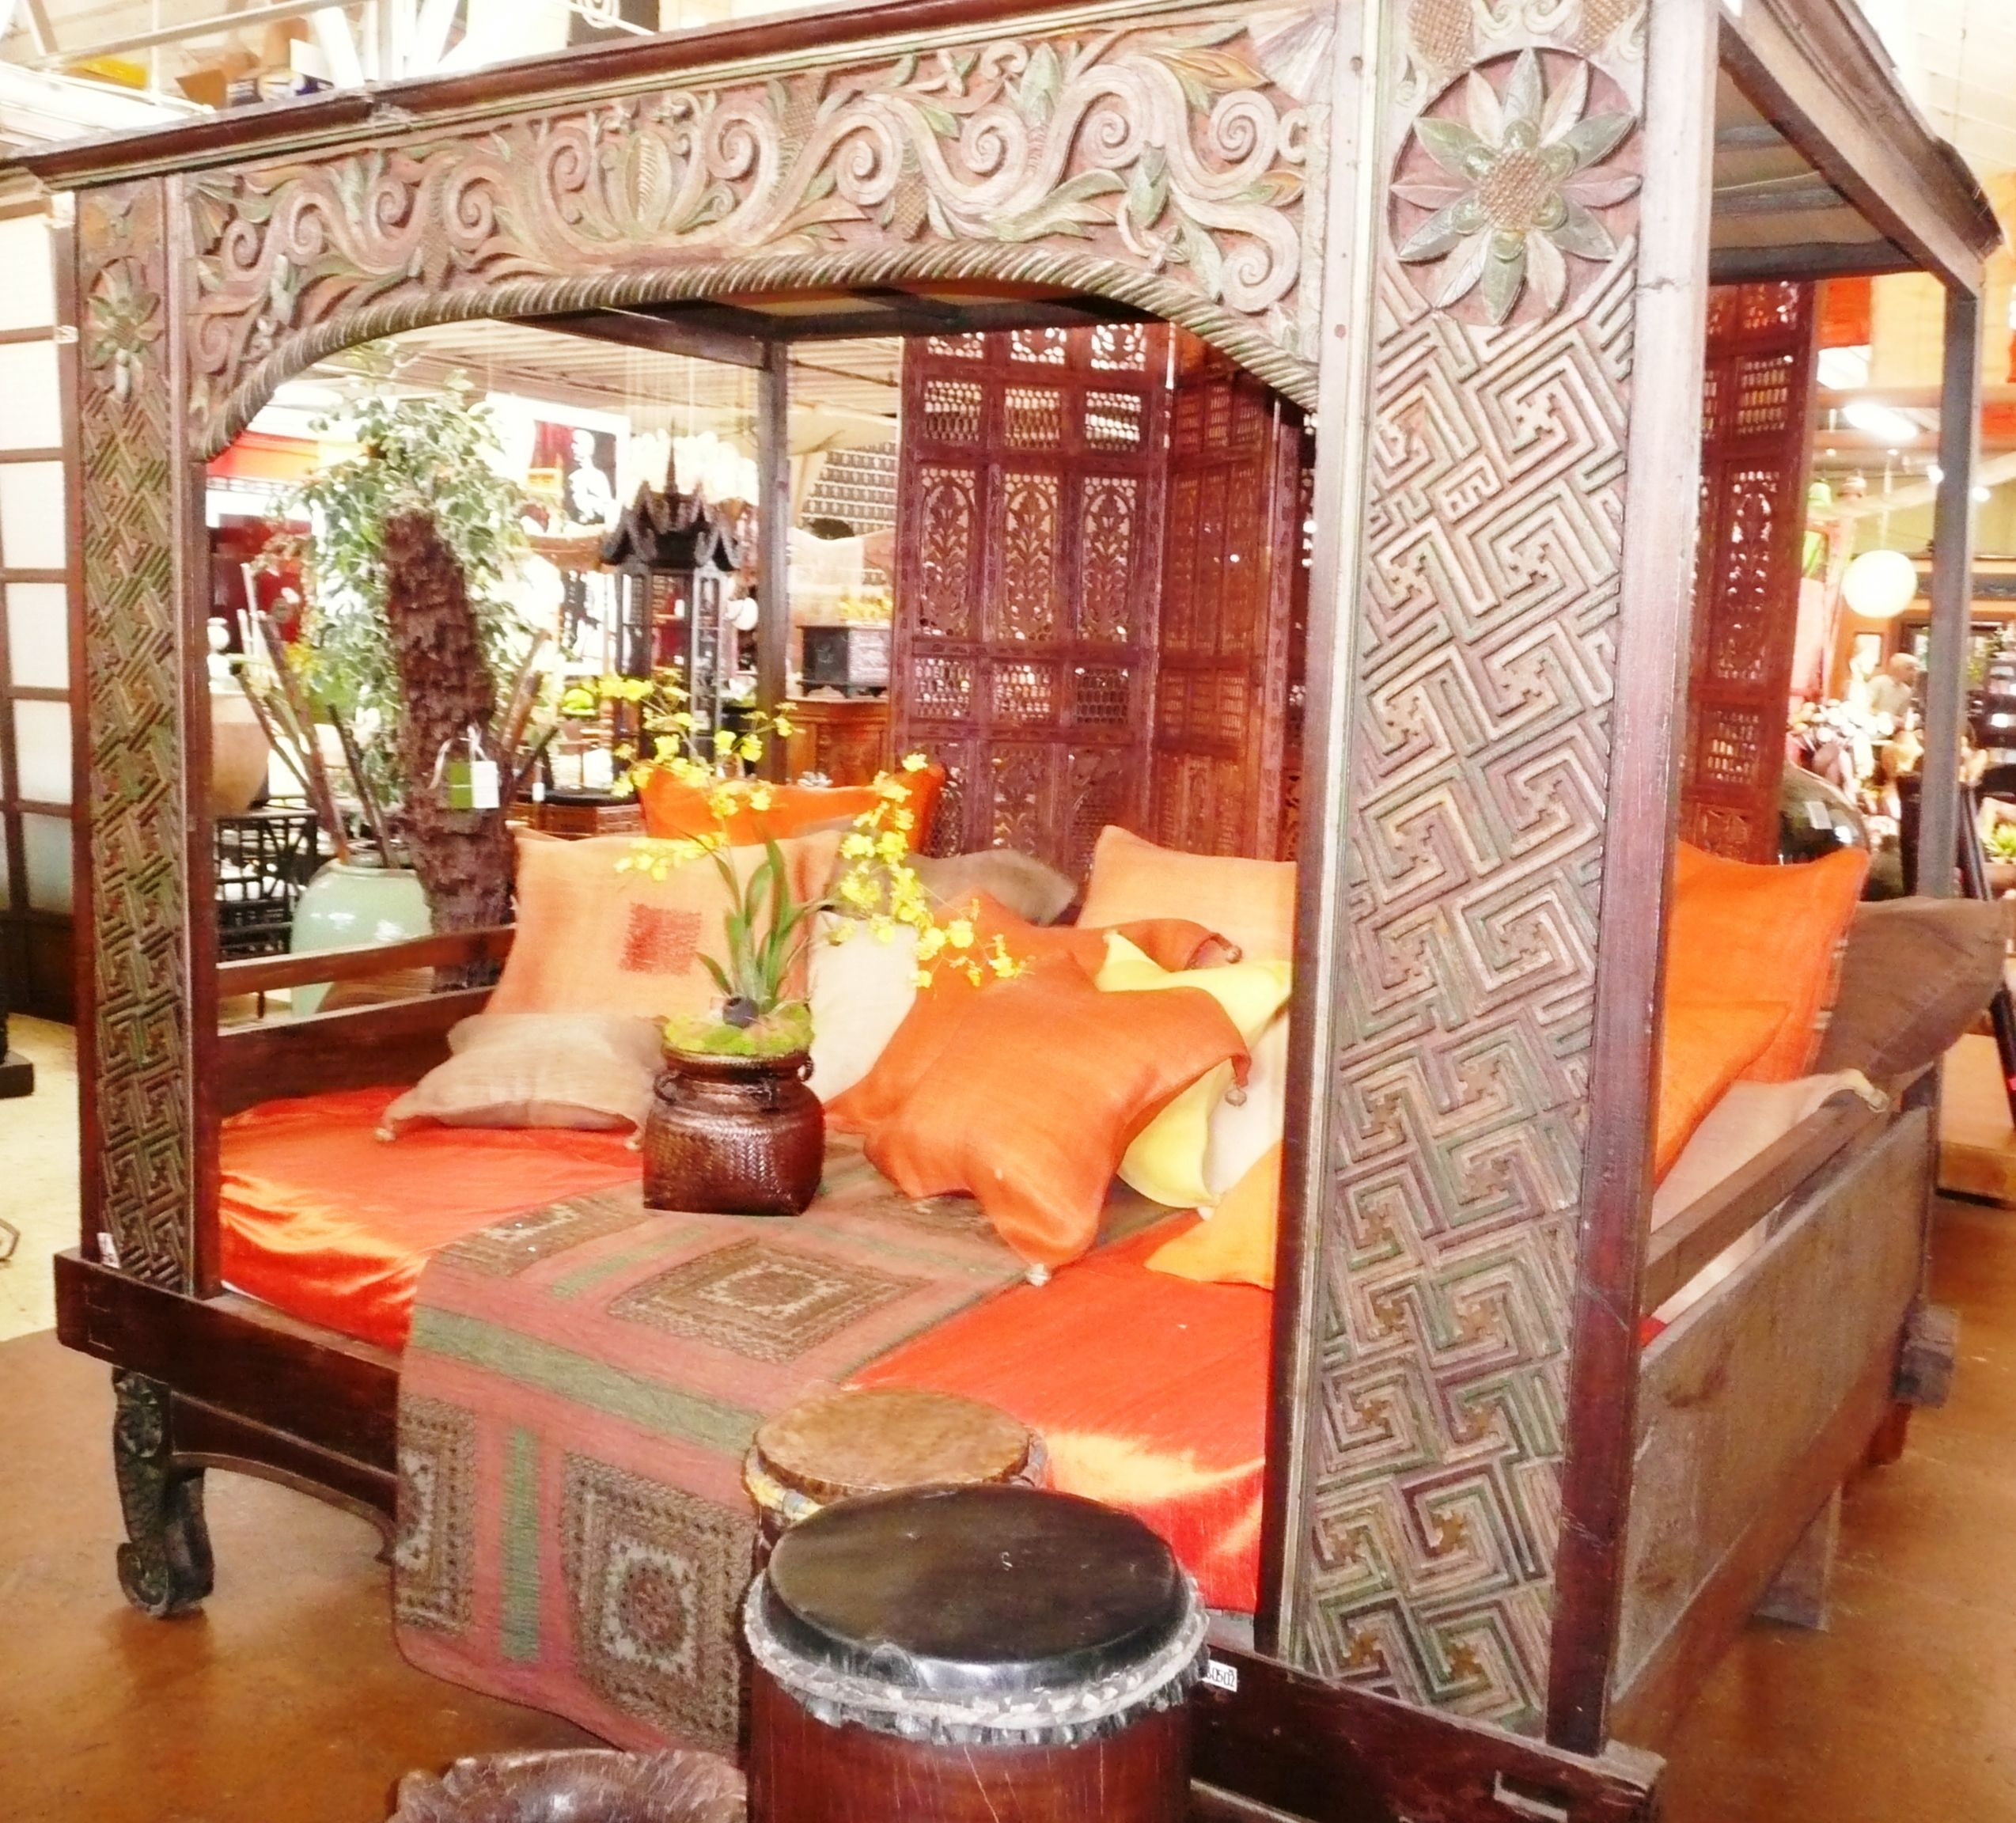 Javanese Wedding Day Bed with Tinalak Hemp Fiber cushions. Out of Asia Showroom.  sales@outofasia.com